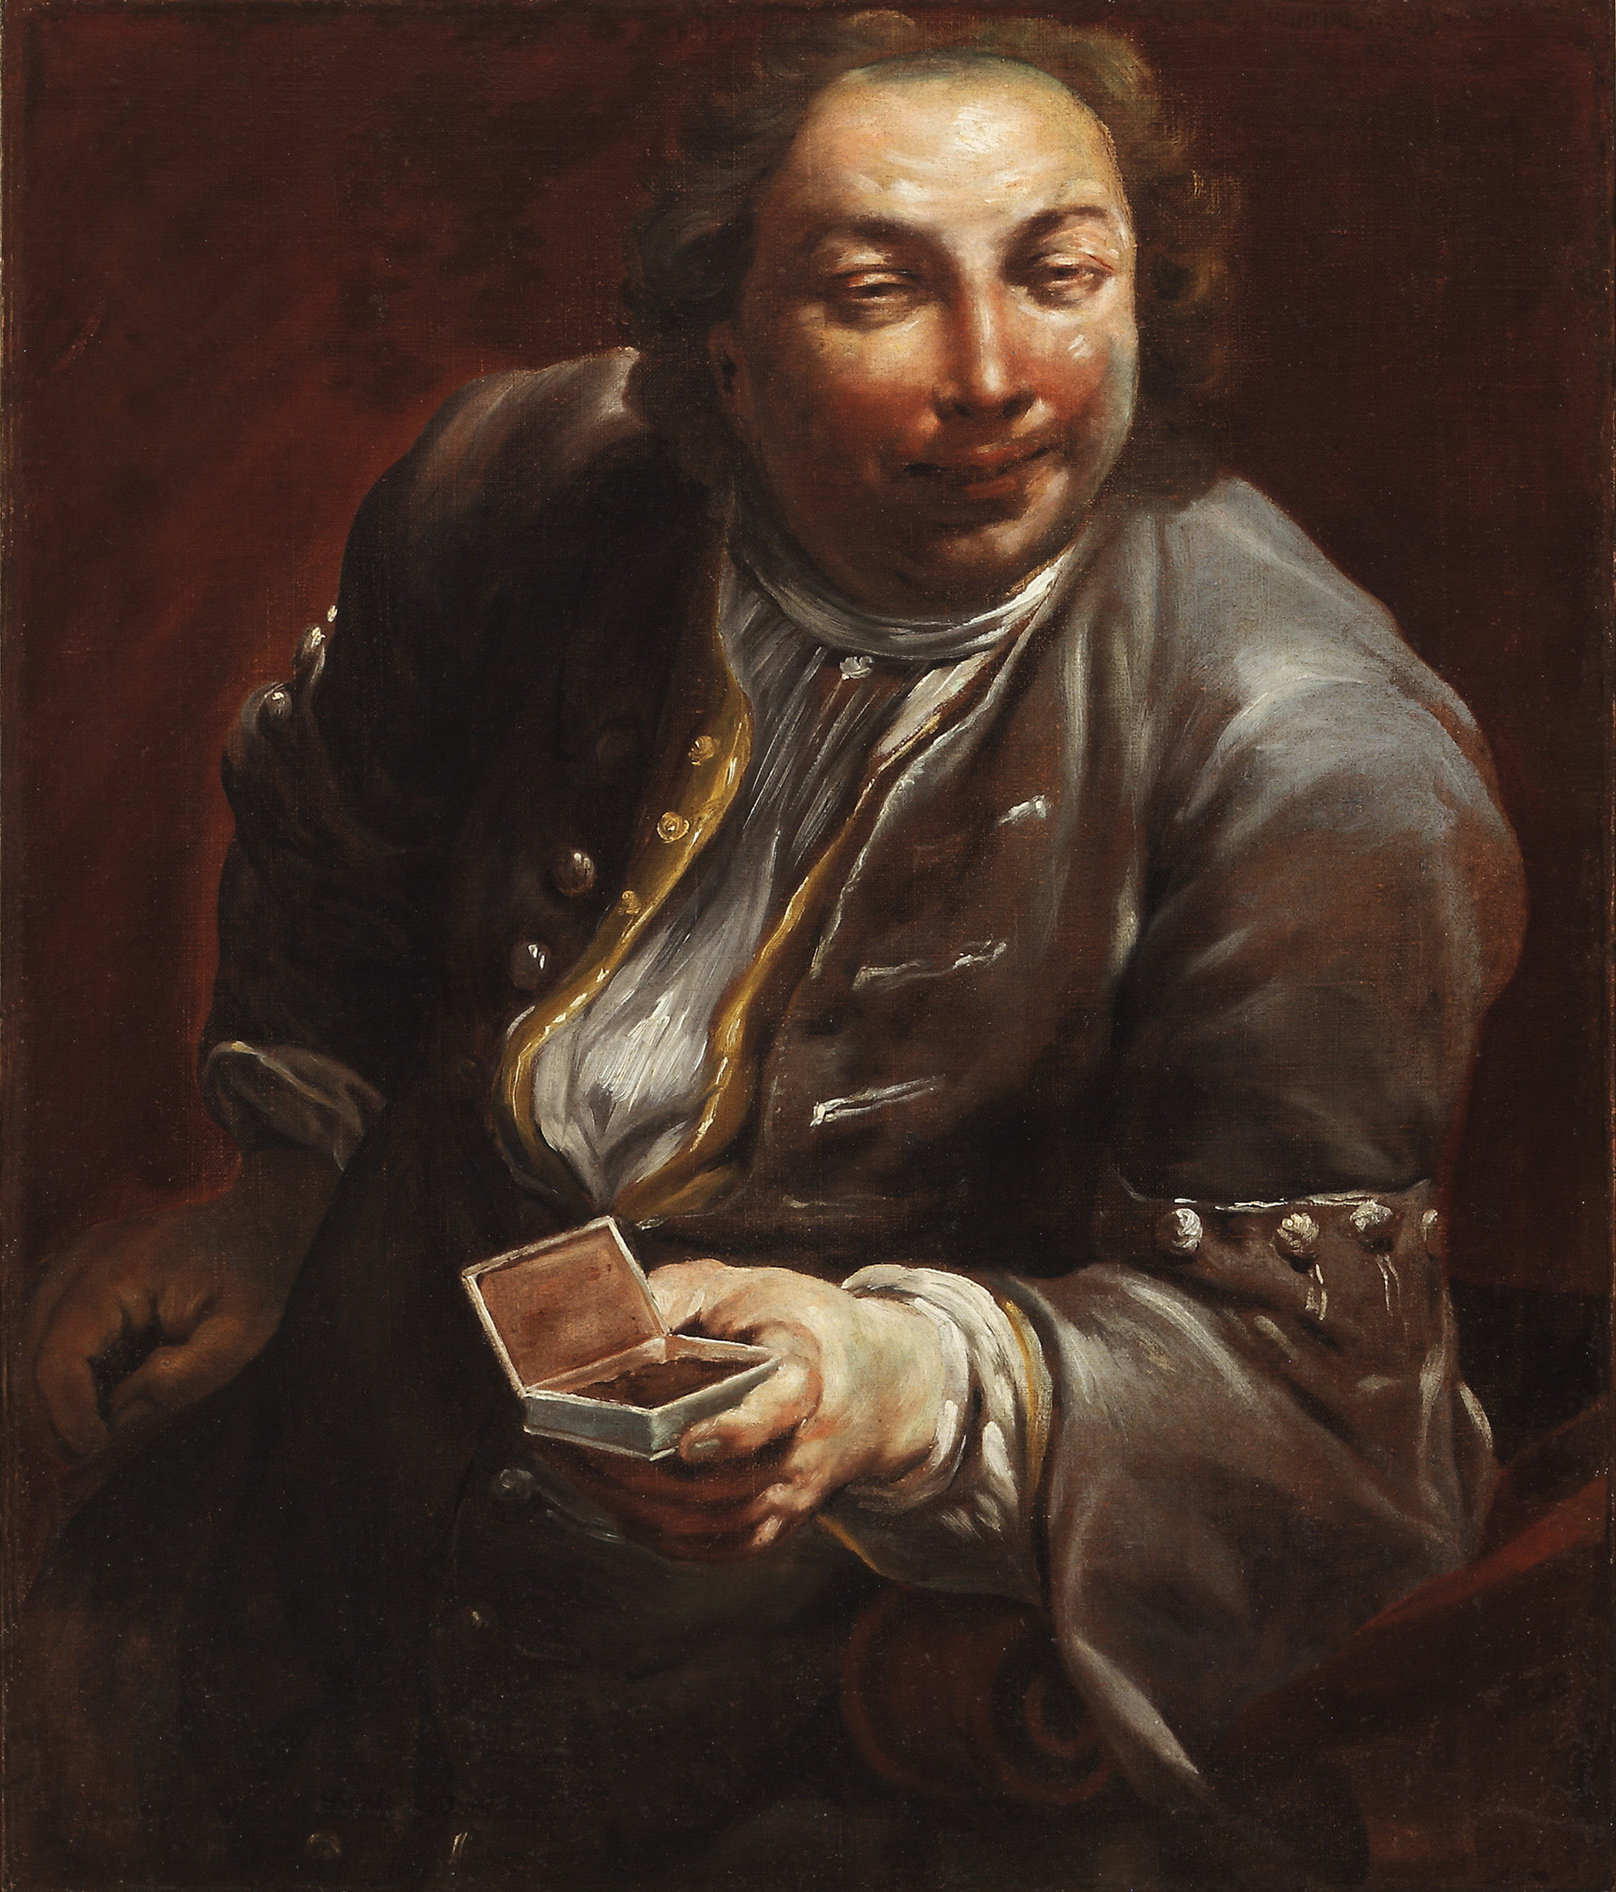 Giuseppe Maria Crespi  (b. 1665)  Portrait of a Gentleman with Snuff  31 ⅞ x 27 ¼ in. oil on canvas